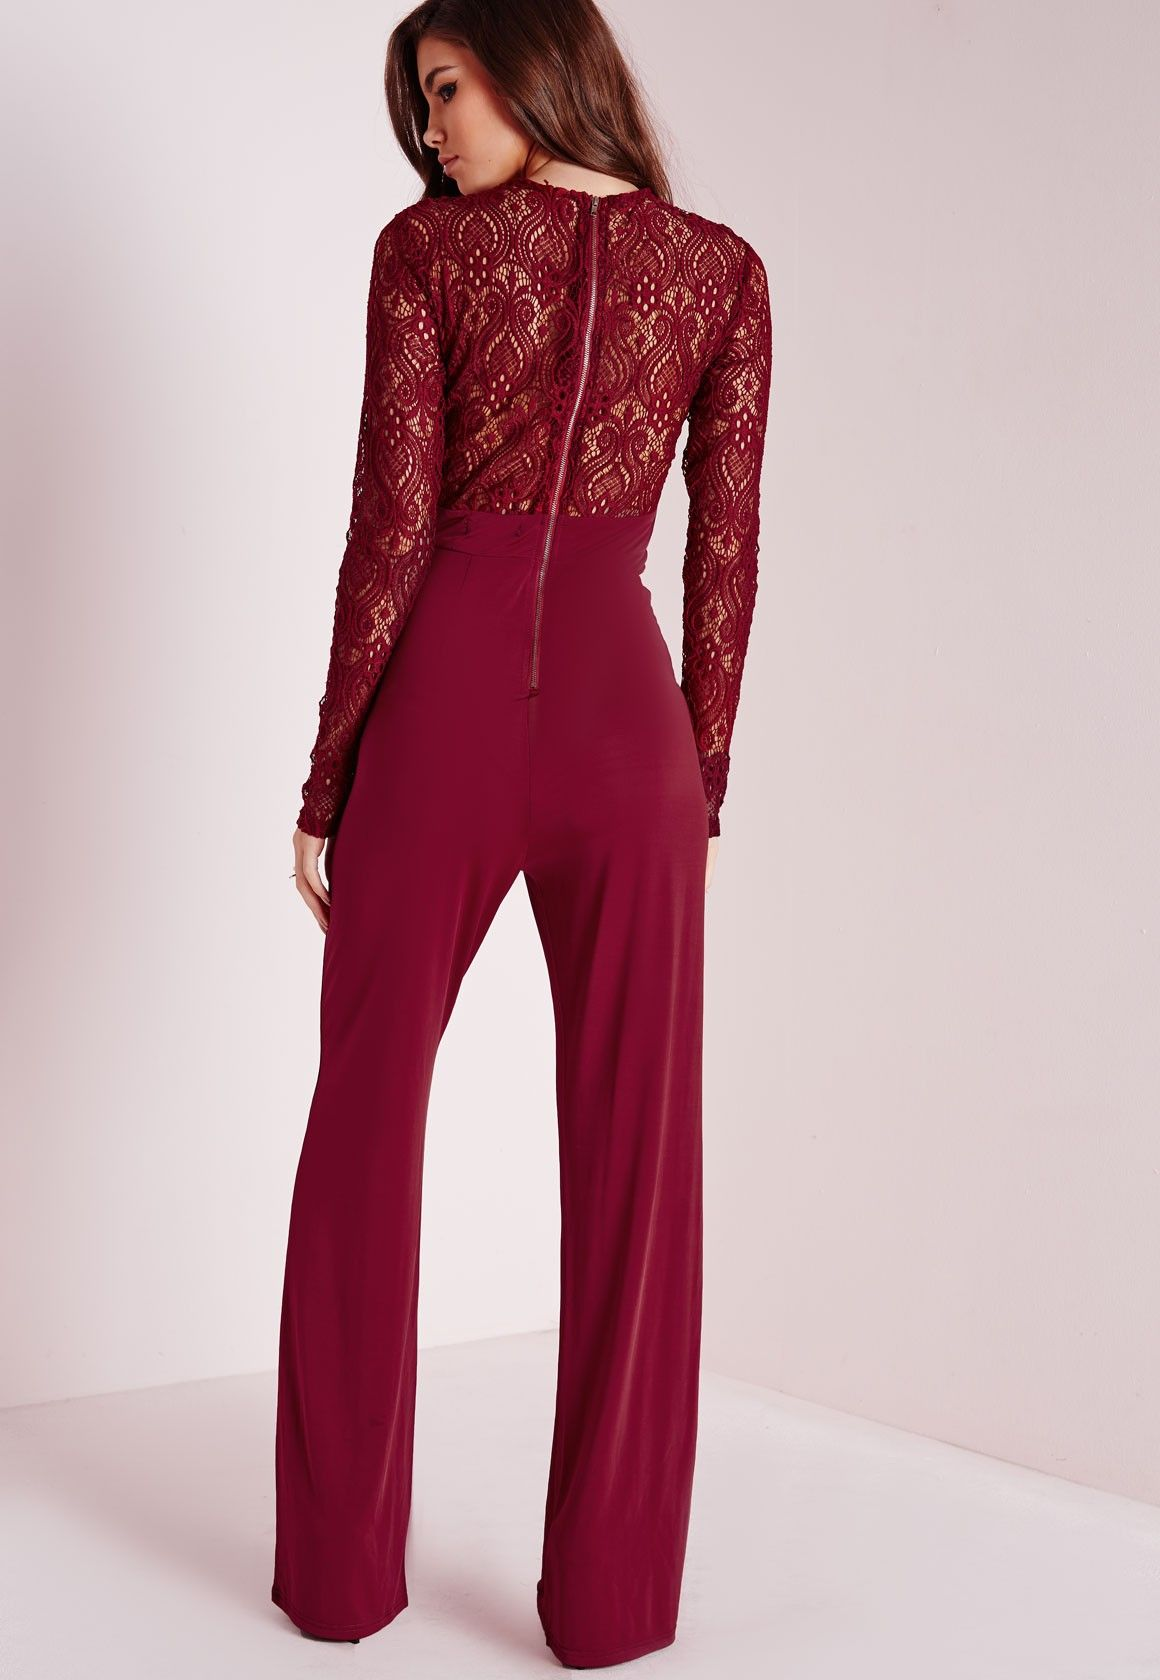 01640e5c59 Missguided - Lace Slinky Jumpsuit Burgundy